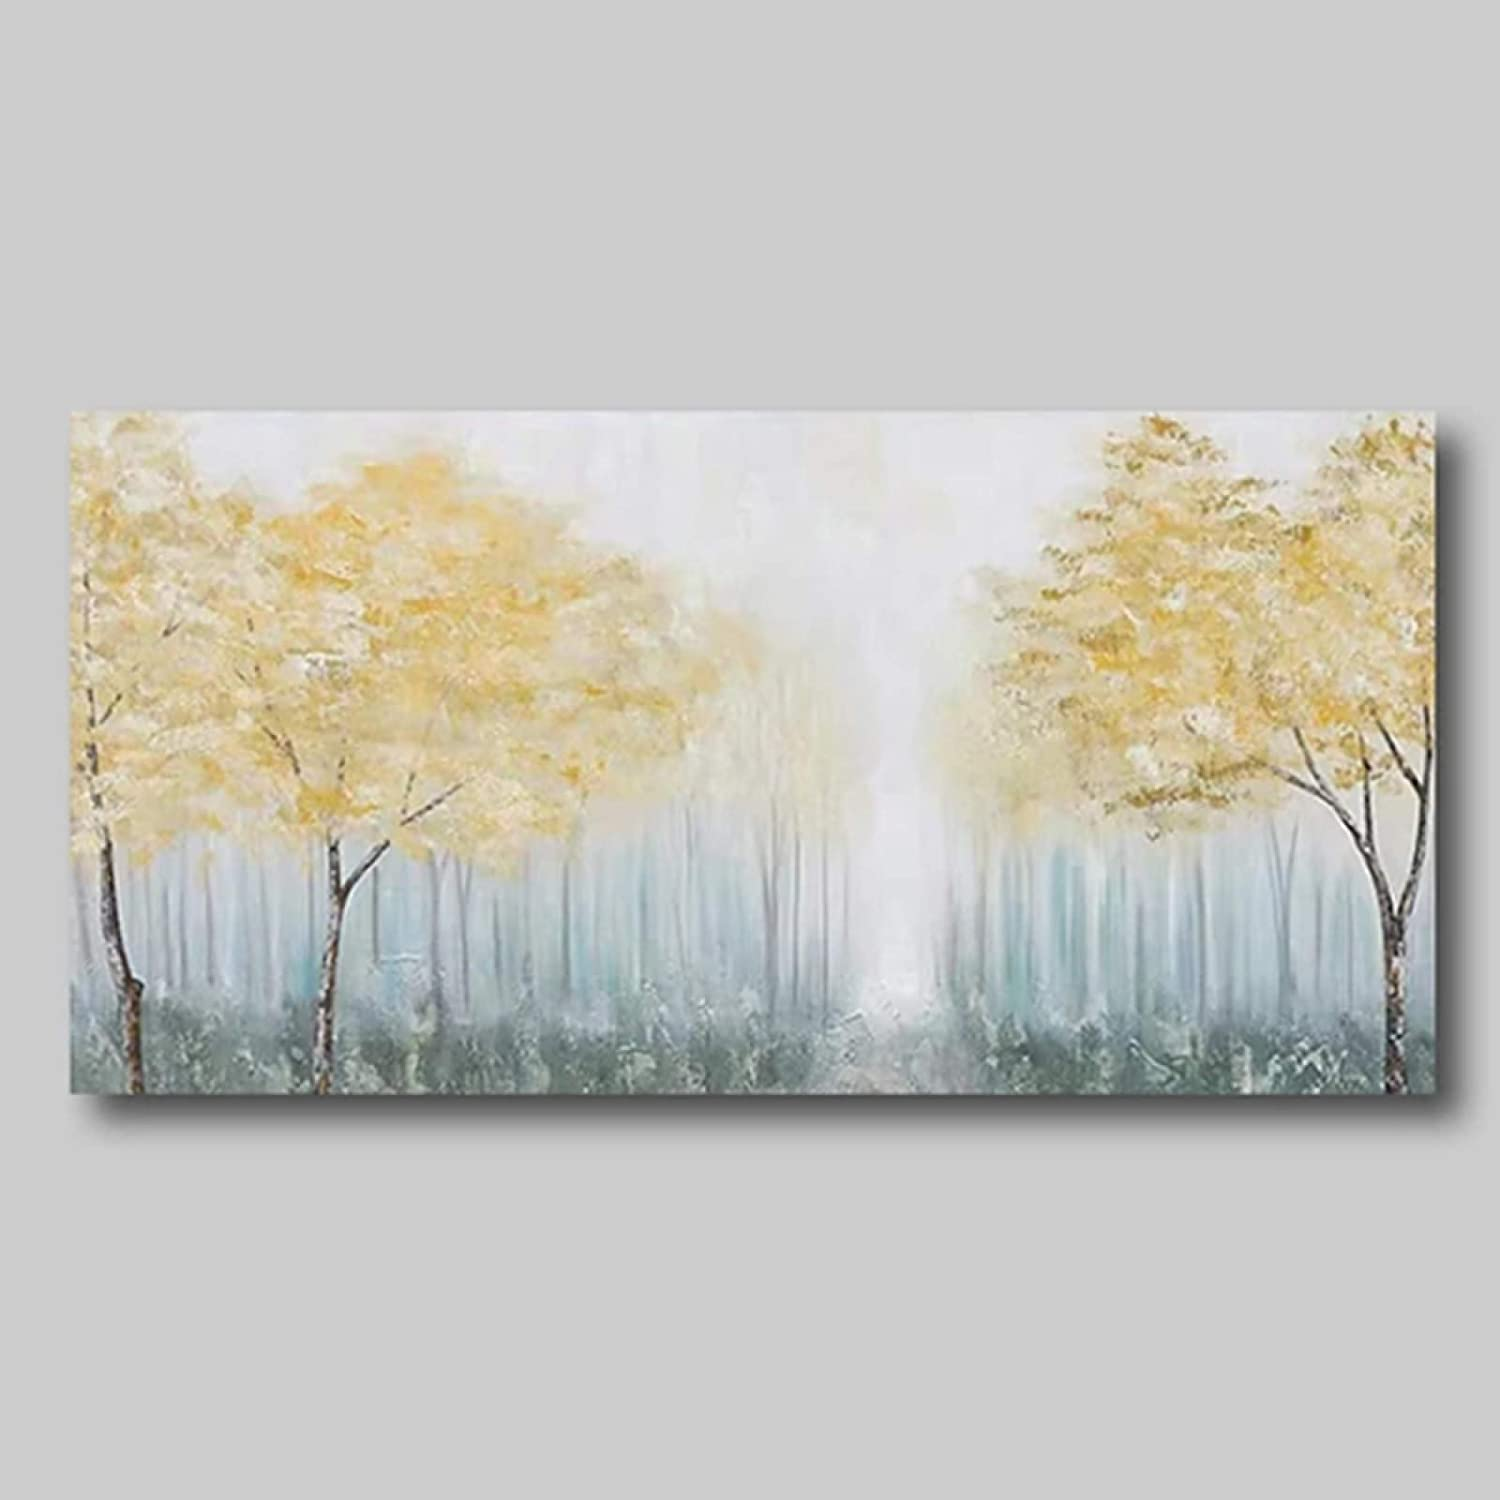 Hand Painted Oil Painting,Modern Art Canvas Prints Wall 100% Hand Painted Abstract Oil Paintings Golden Woods Landscape Wall Art Picture for Living Room Bedroom Decorations,140×280Cm